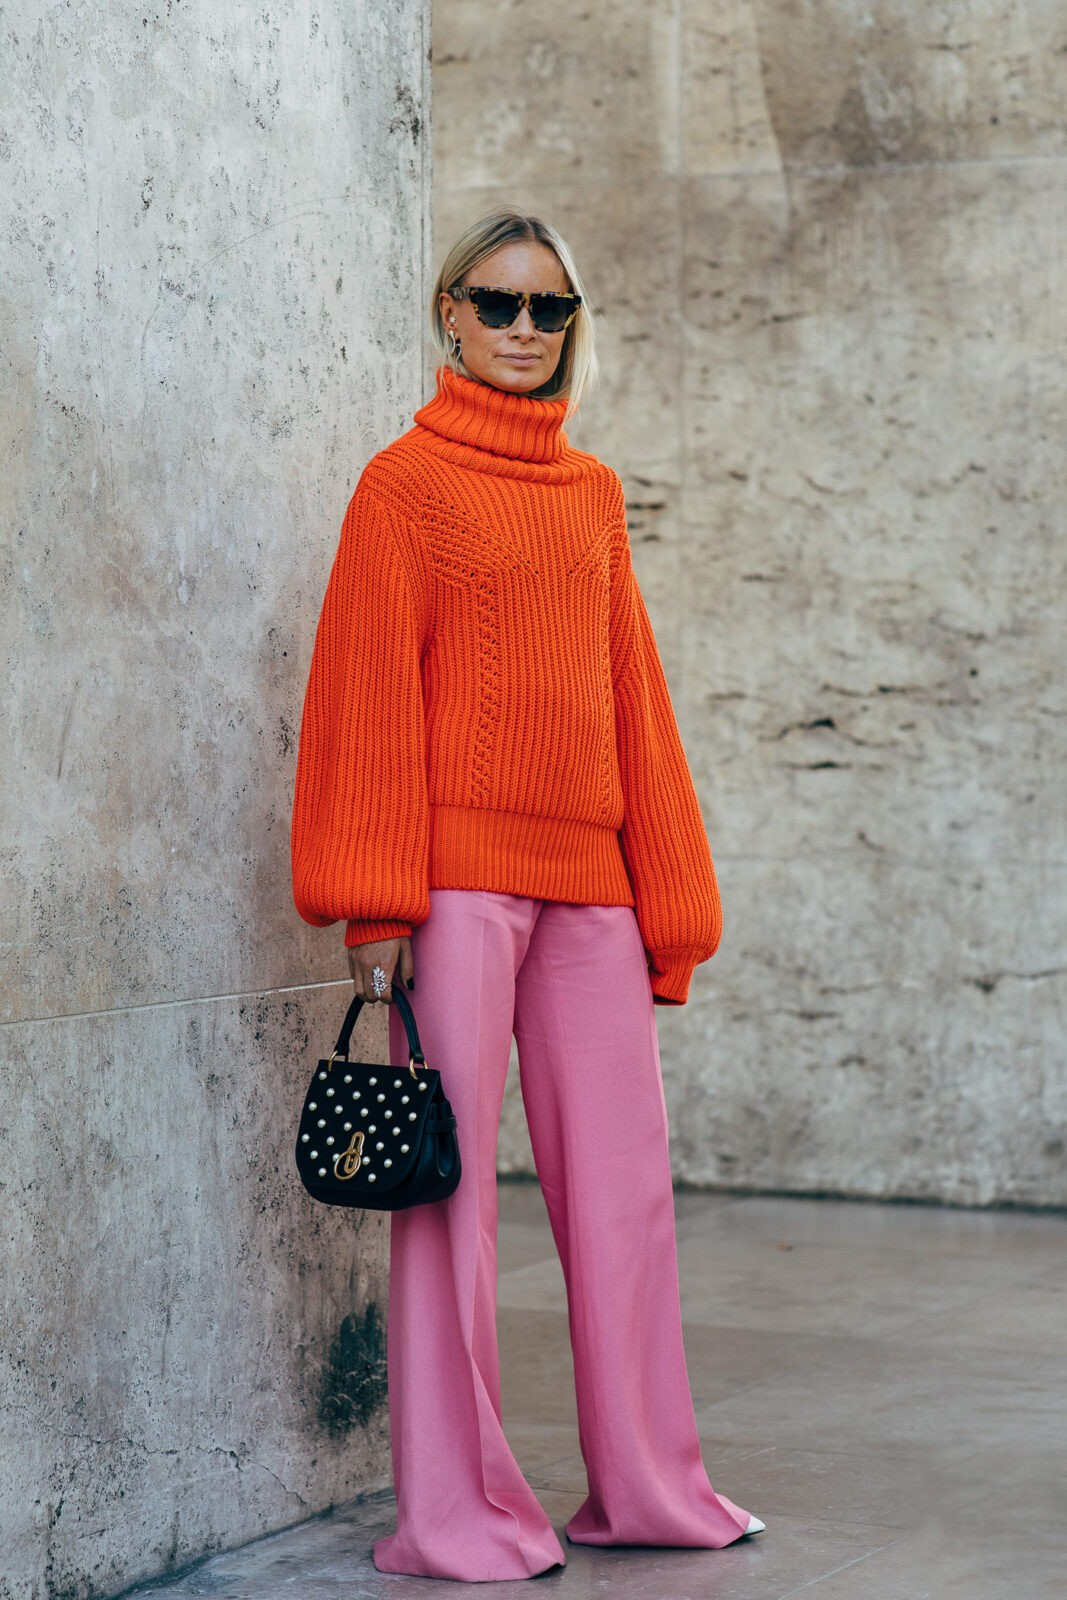 Thora Valdimarsdottir turtleneck stylebook edit seven